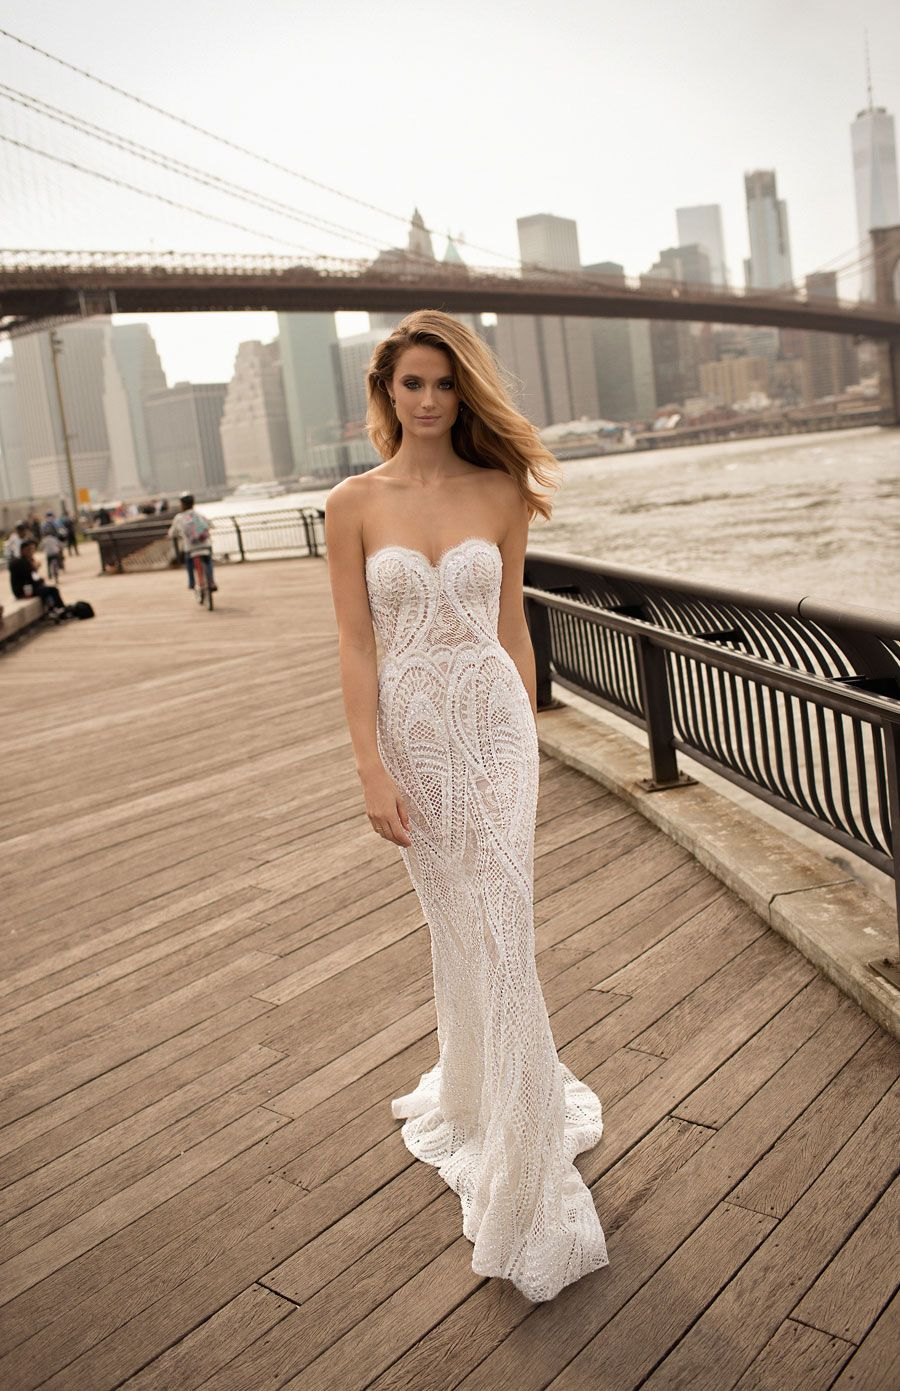 Berta bridal 2018 the most in demand wedding dresses in the world berta bridal 2018 the most in demand wedding dresses in the world junglespirit Choice Image